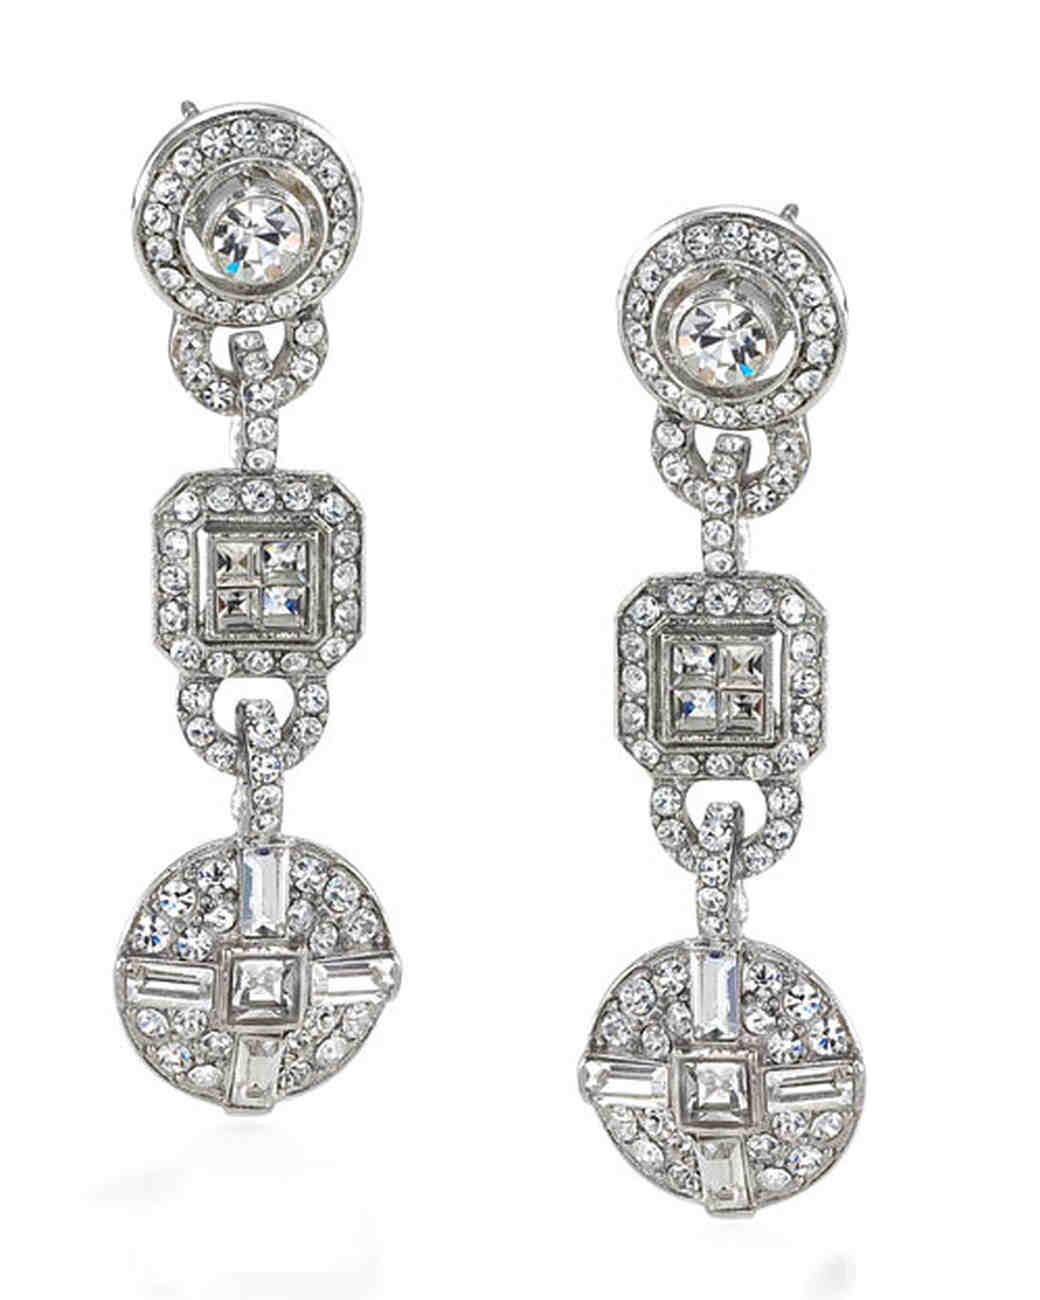 paris in zoom moreland debra xl chandelier eila by bhldn sale day silver earrings product a wedding